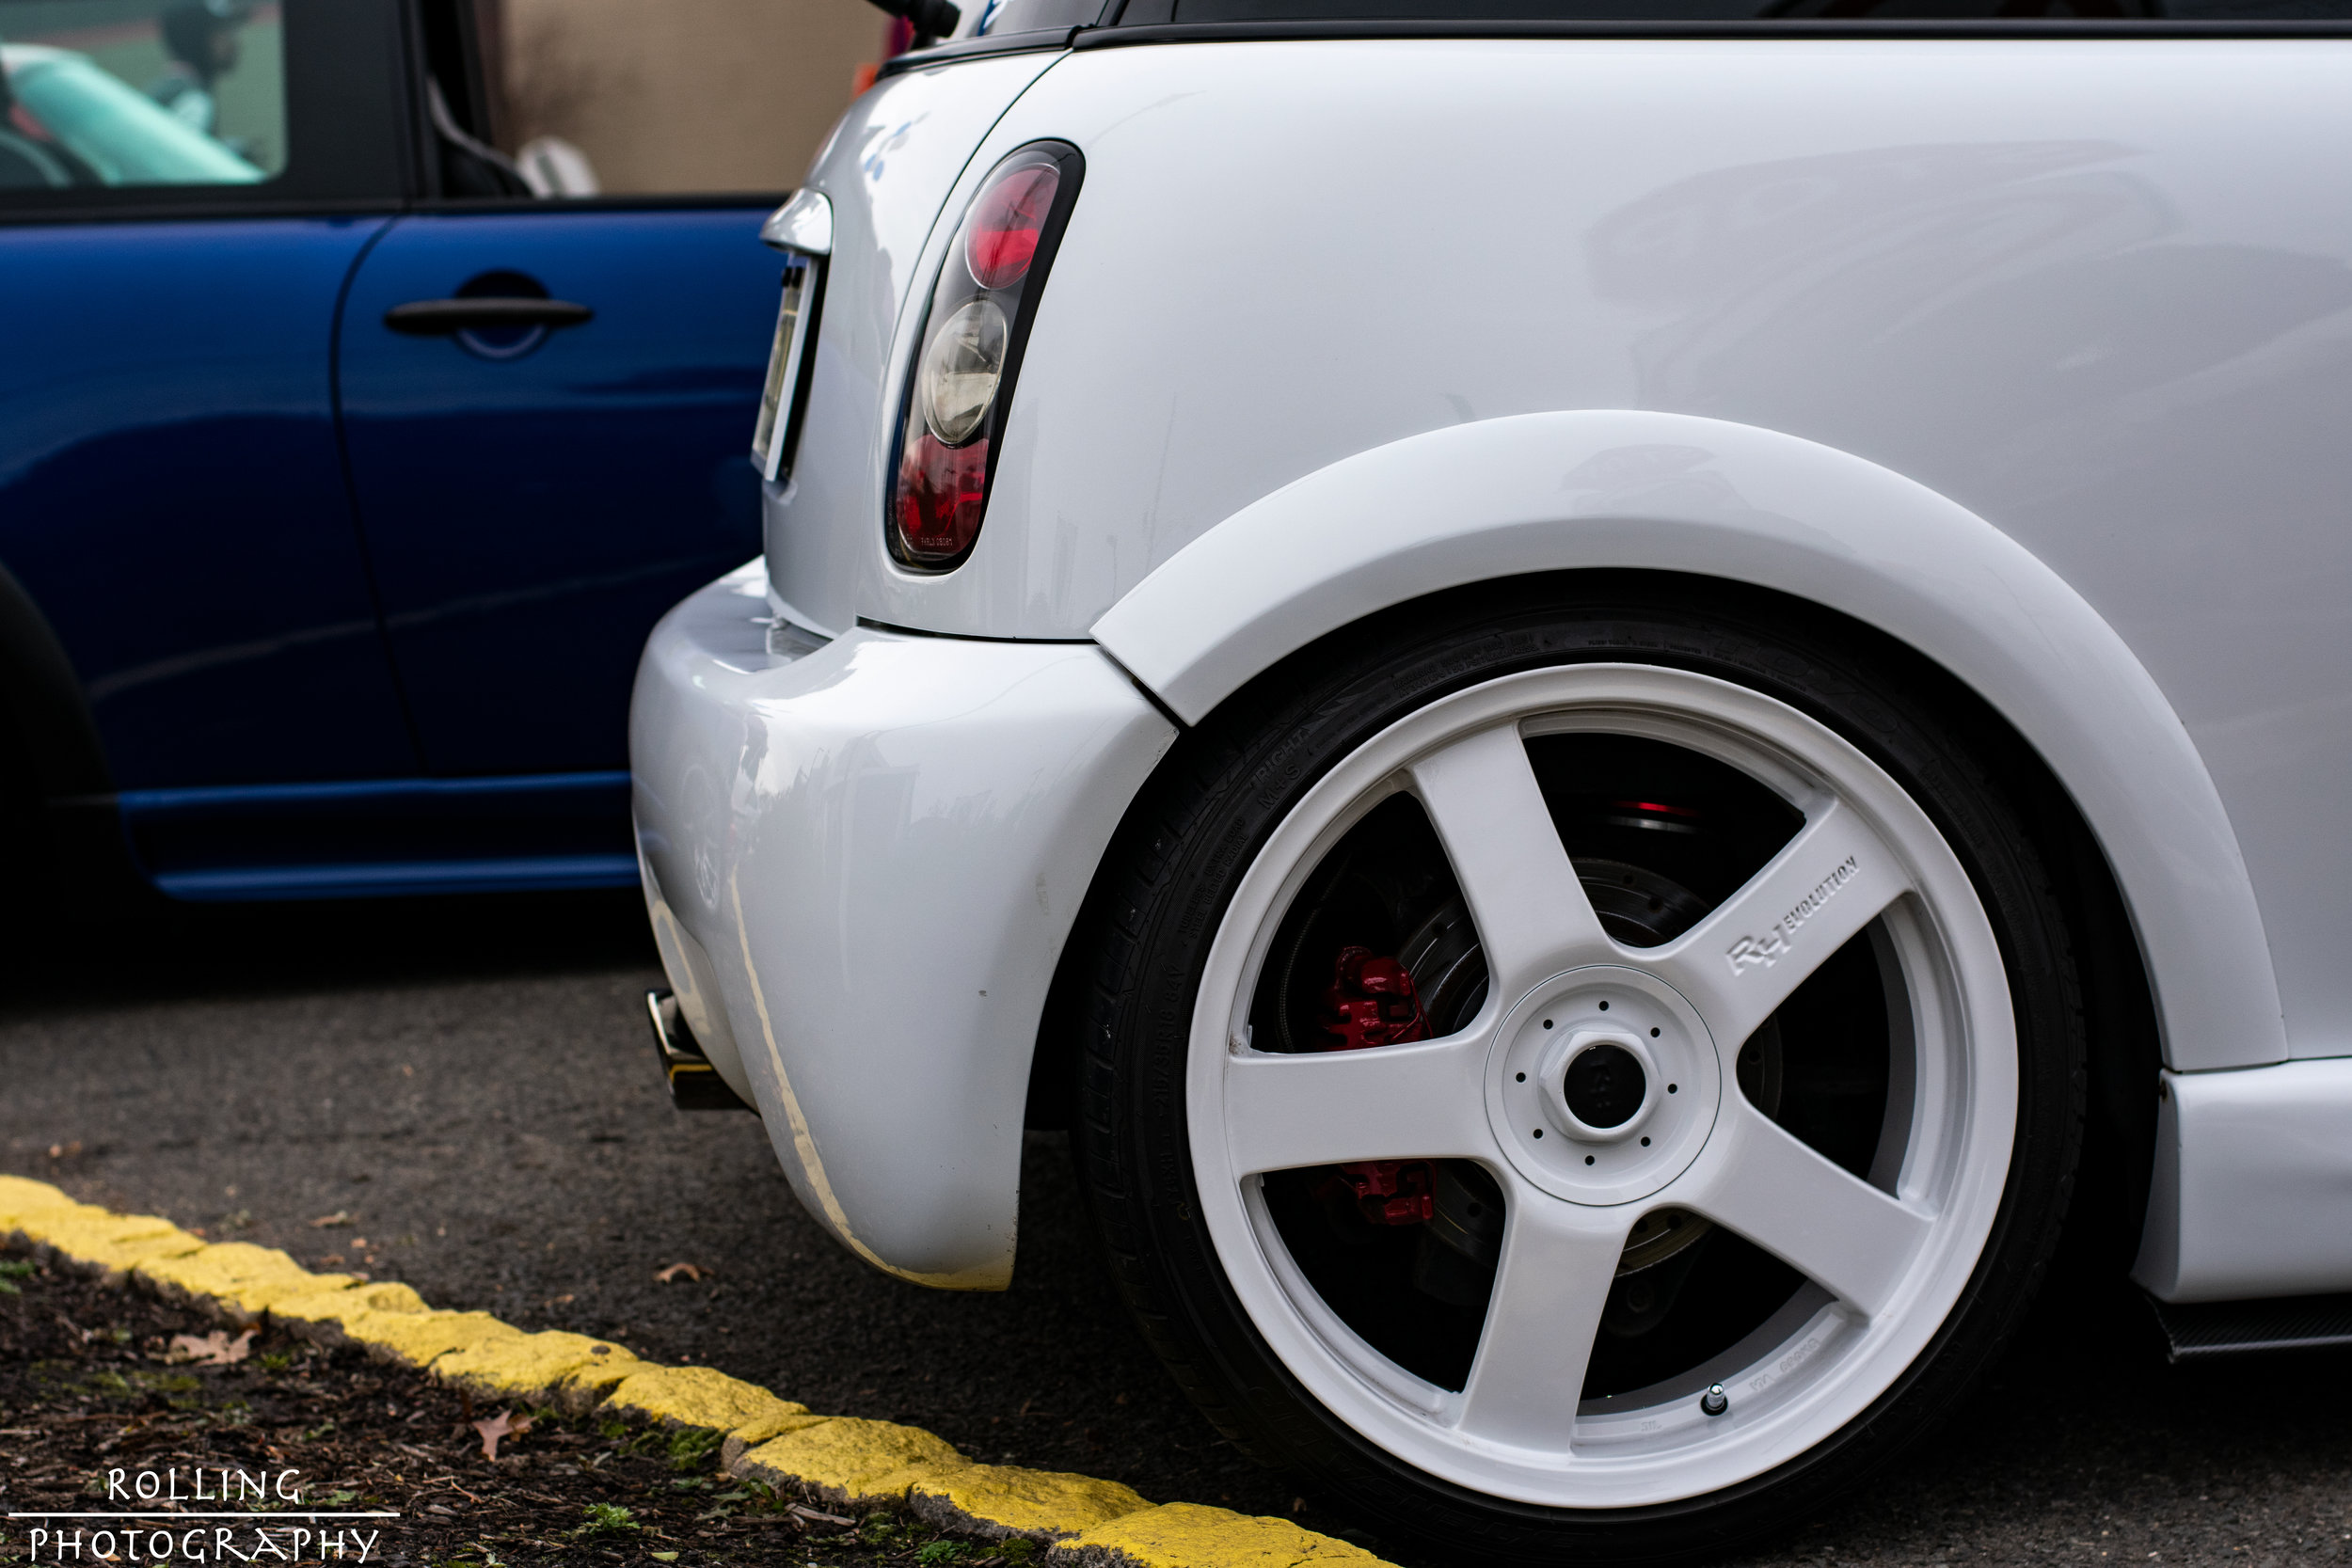 Euro_Kult SIKMINI Right Rear Quarter Profile.jpg